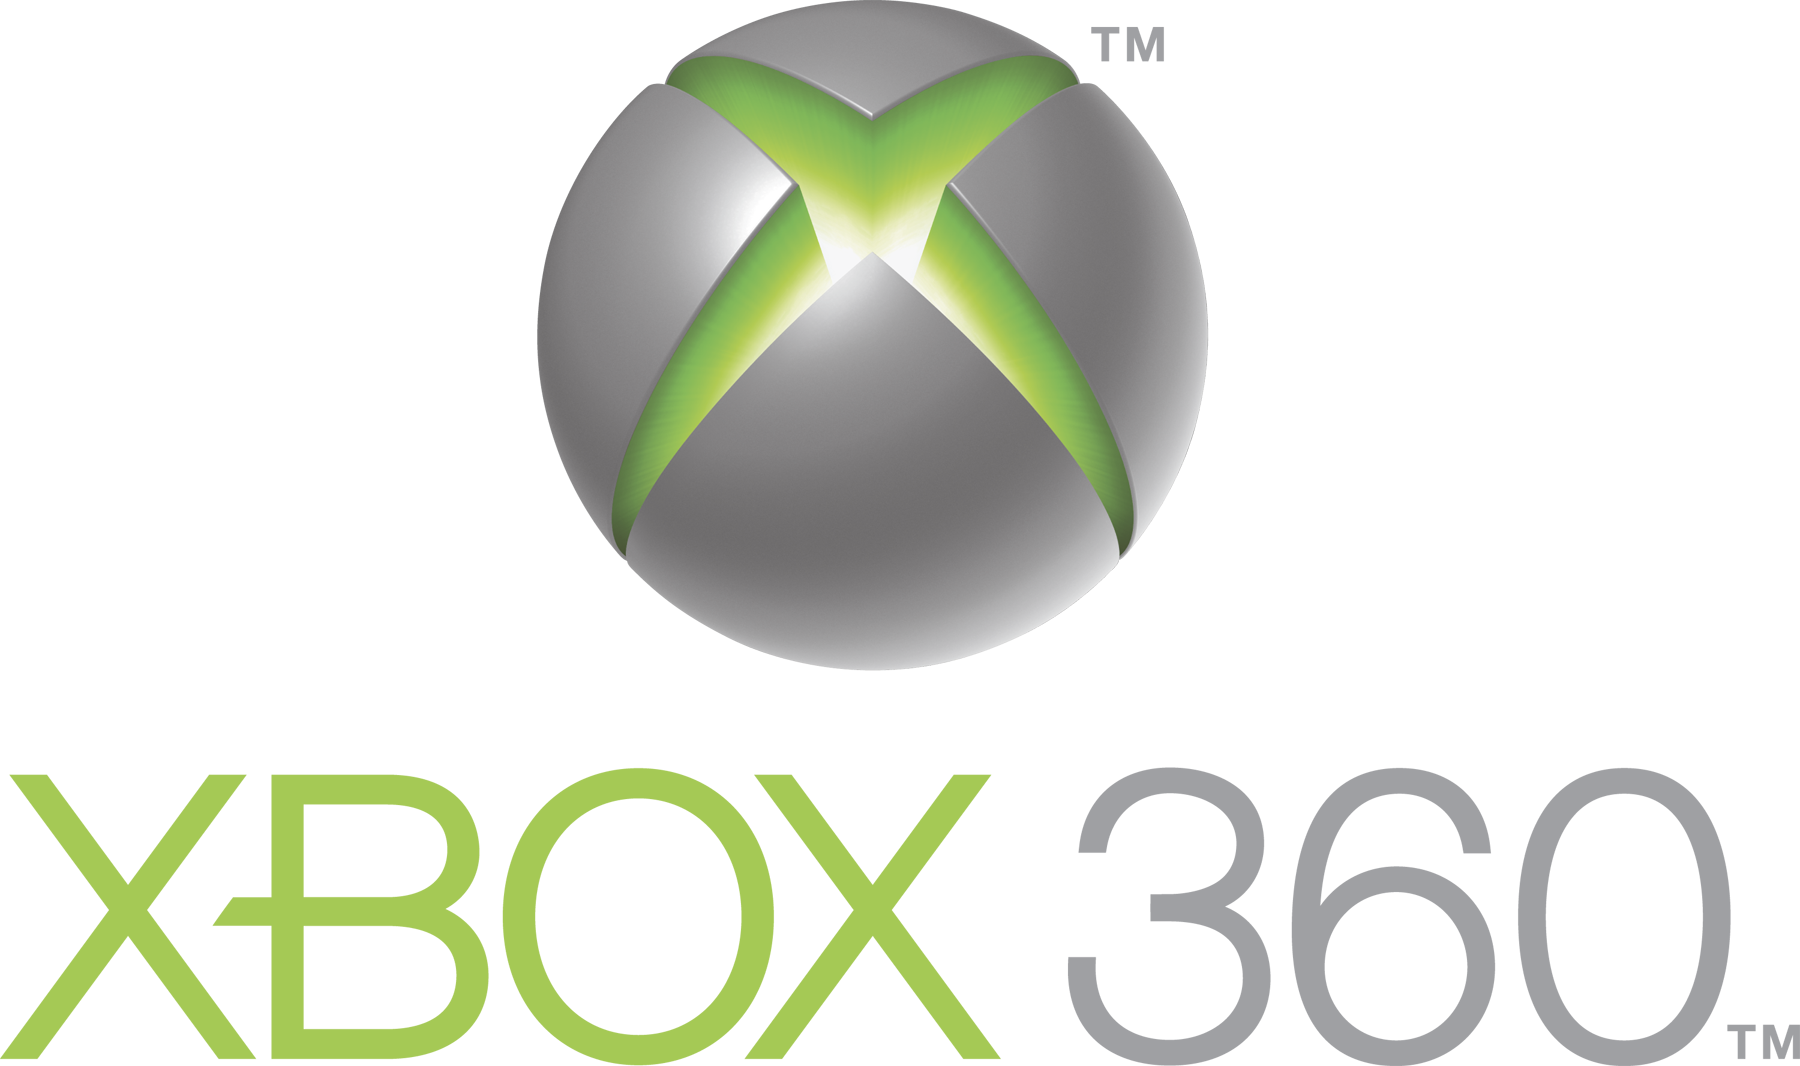 xbox Xbox 22m likes welcome to the official xbox page - your source for news, information, product releases, events, sports, entertainment & exclusive.